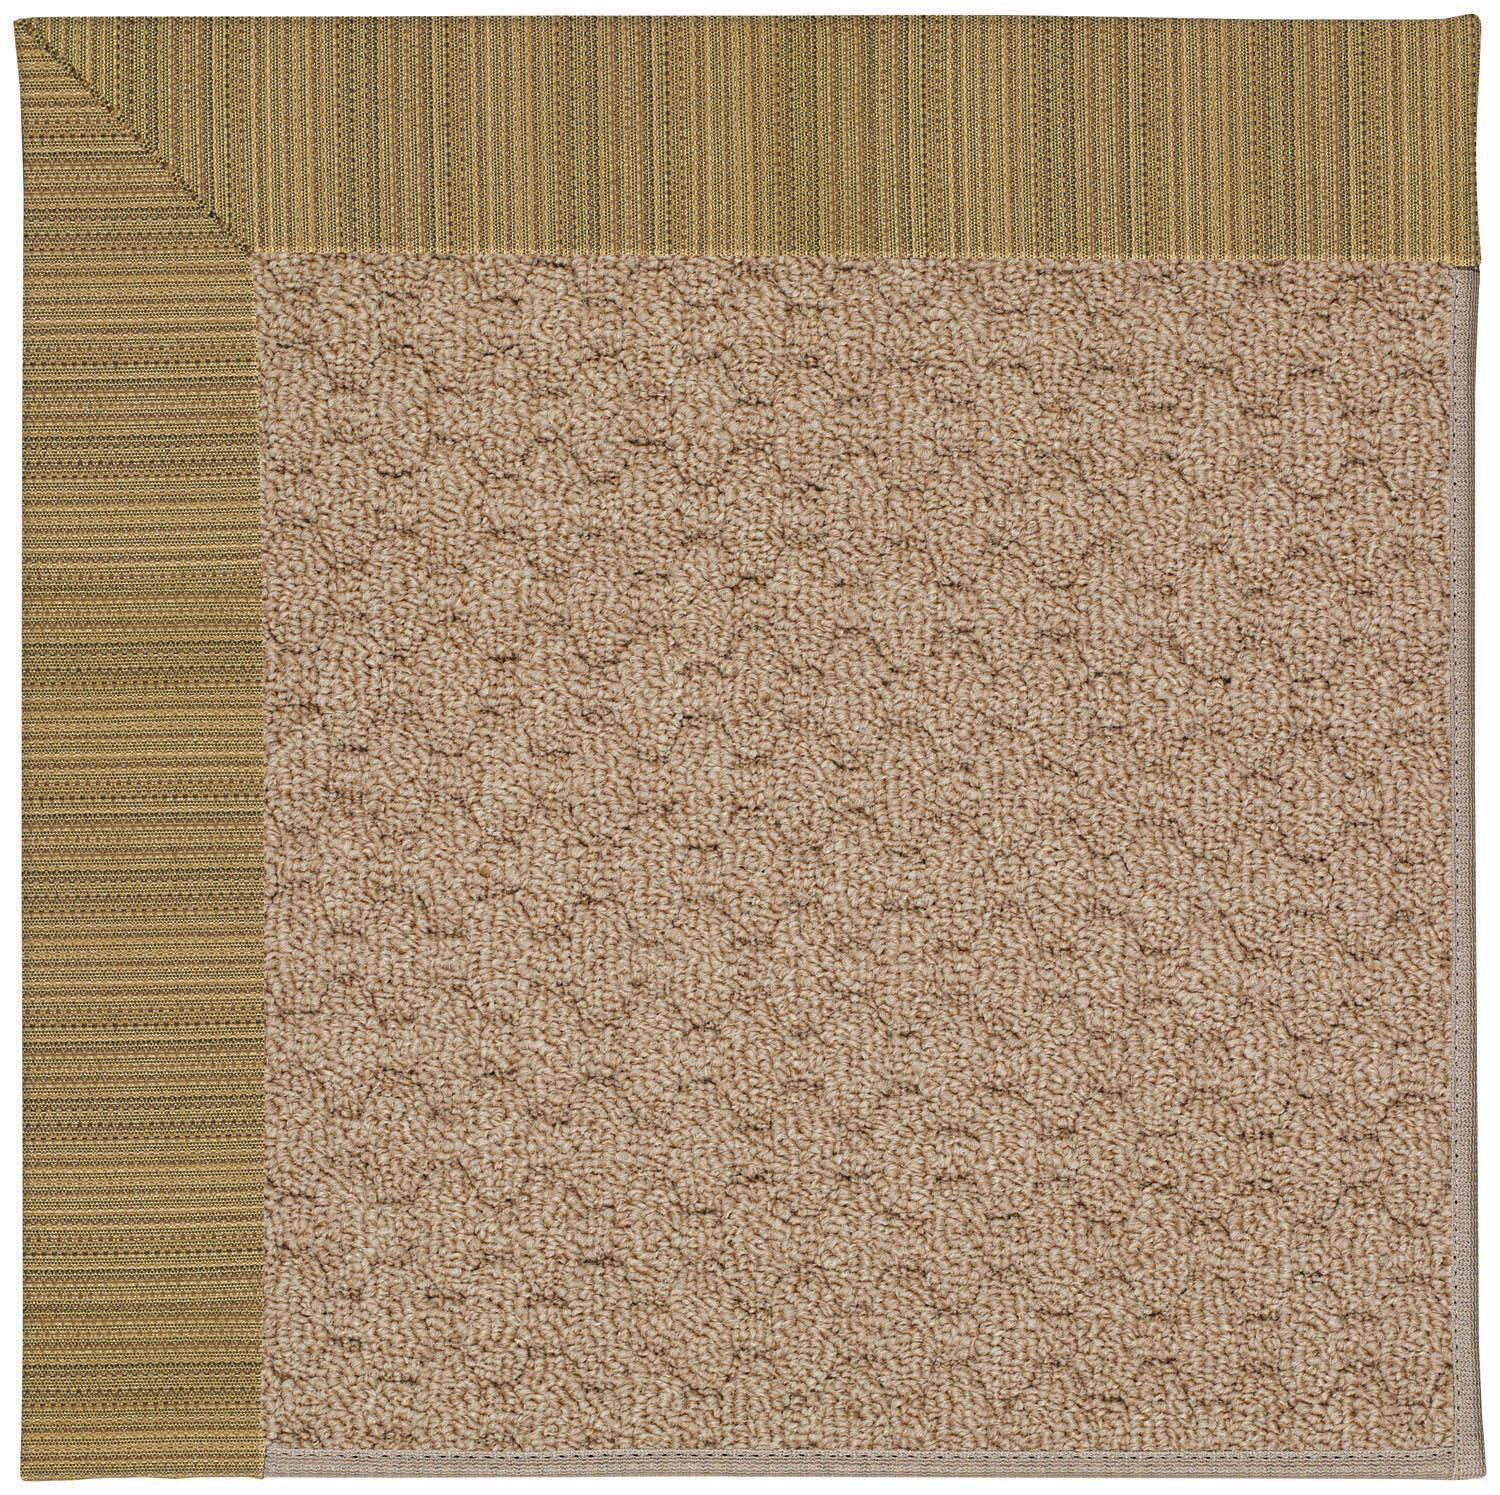 Lisle Machine Tufted Indoor/Outdoor Area Rug Rug Size: Square 4'